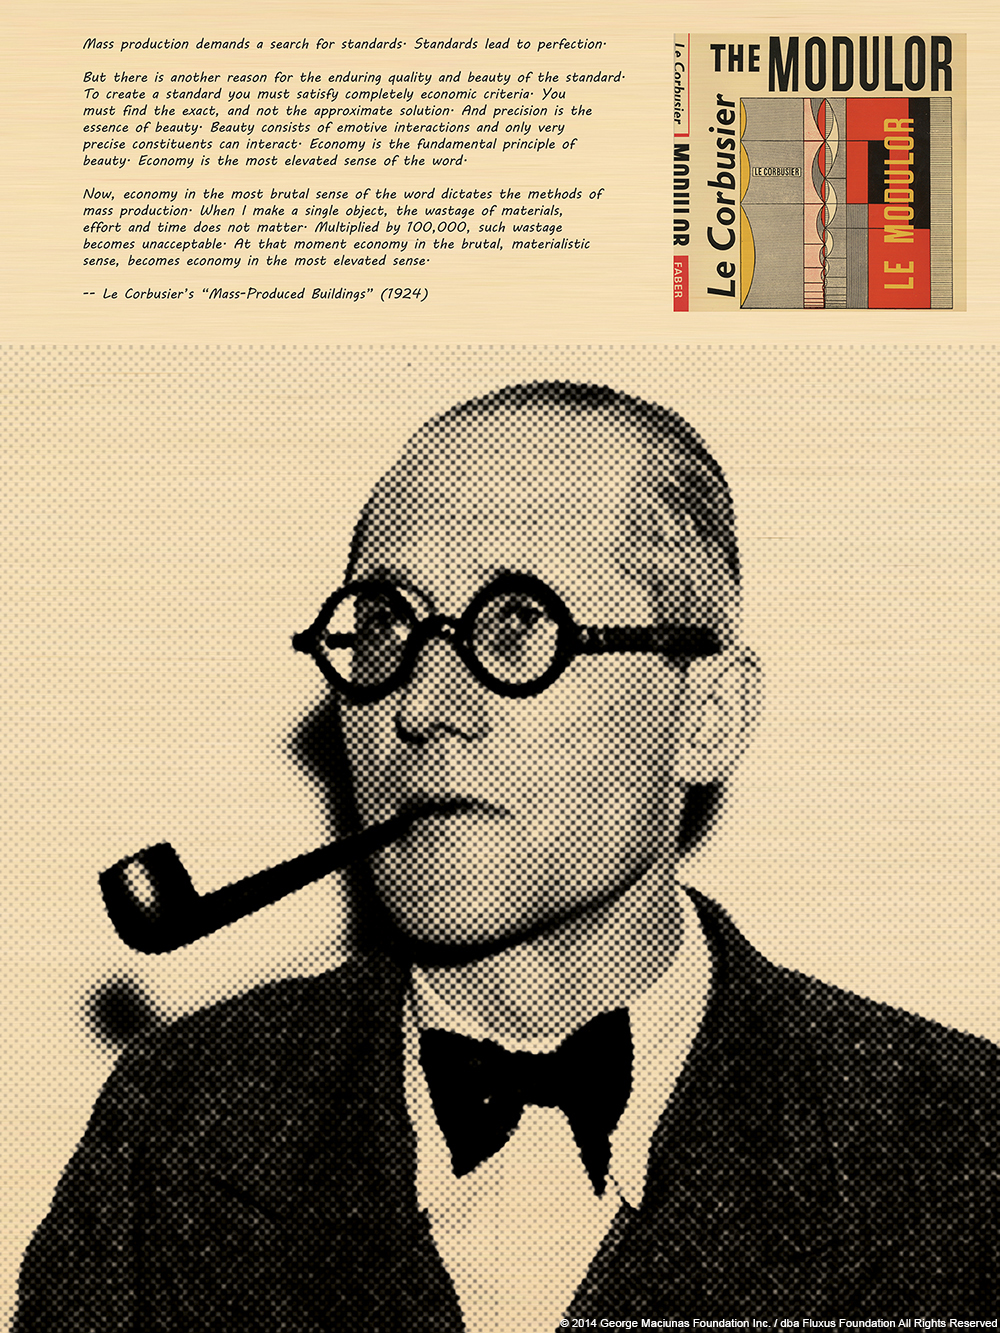 george-maciunas-le-corbusier_fluxus-foundation-1